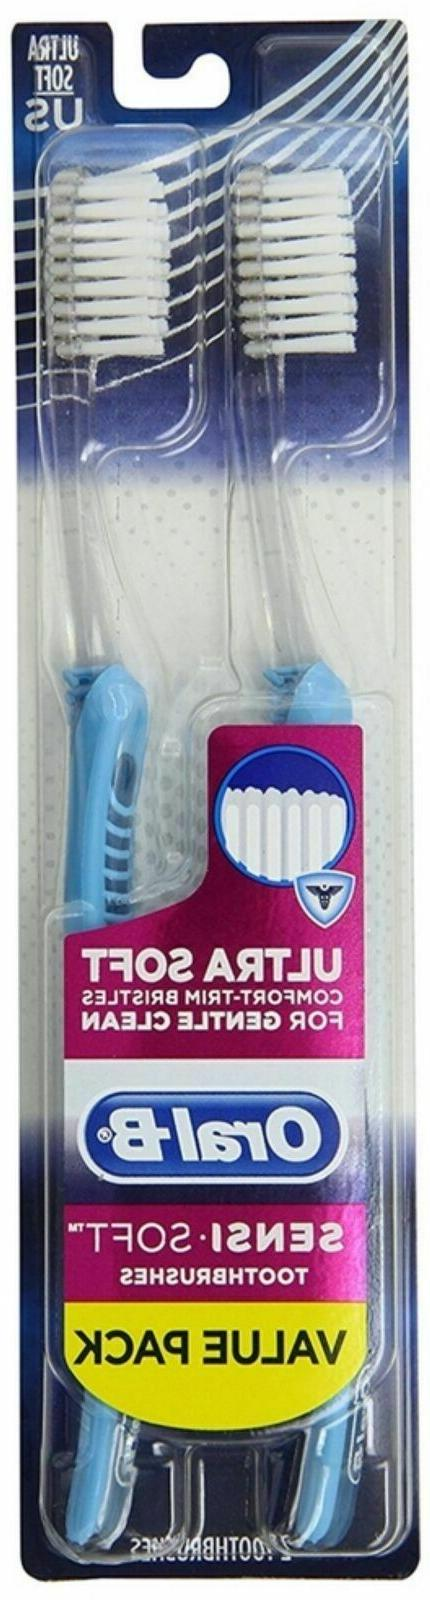 Oral-B Sensi-Soft Toothbrush Twin Pack, Colors May Vary